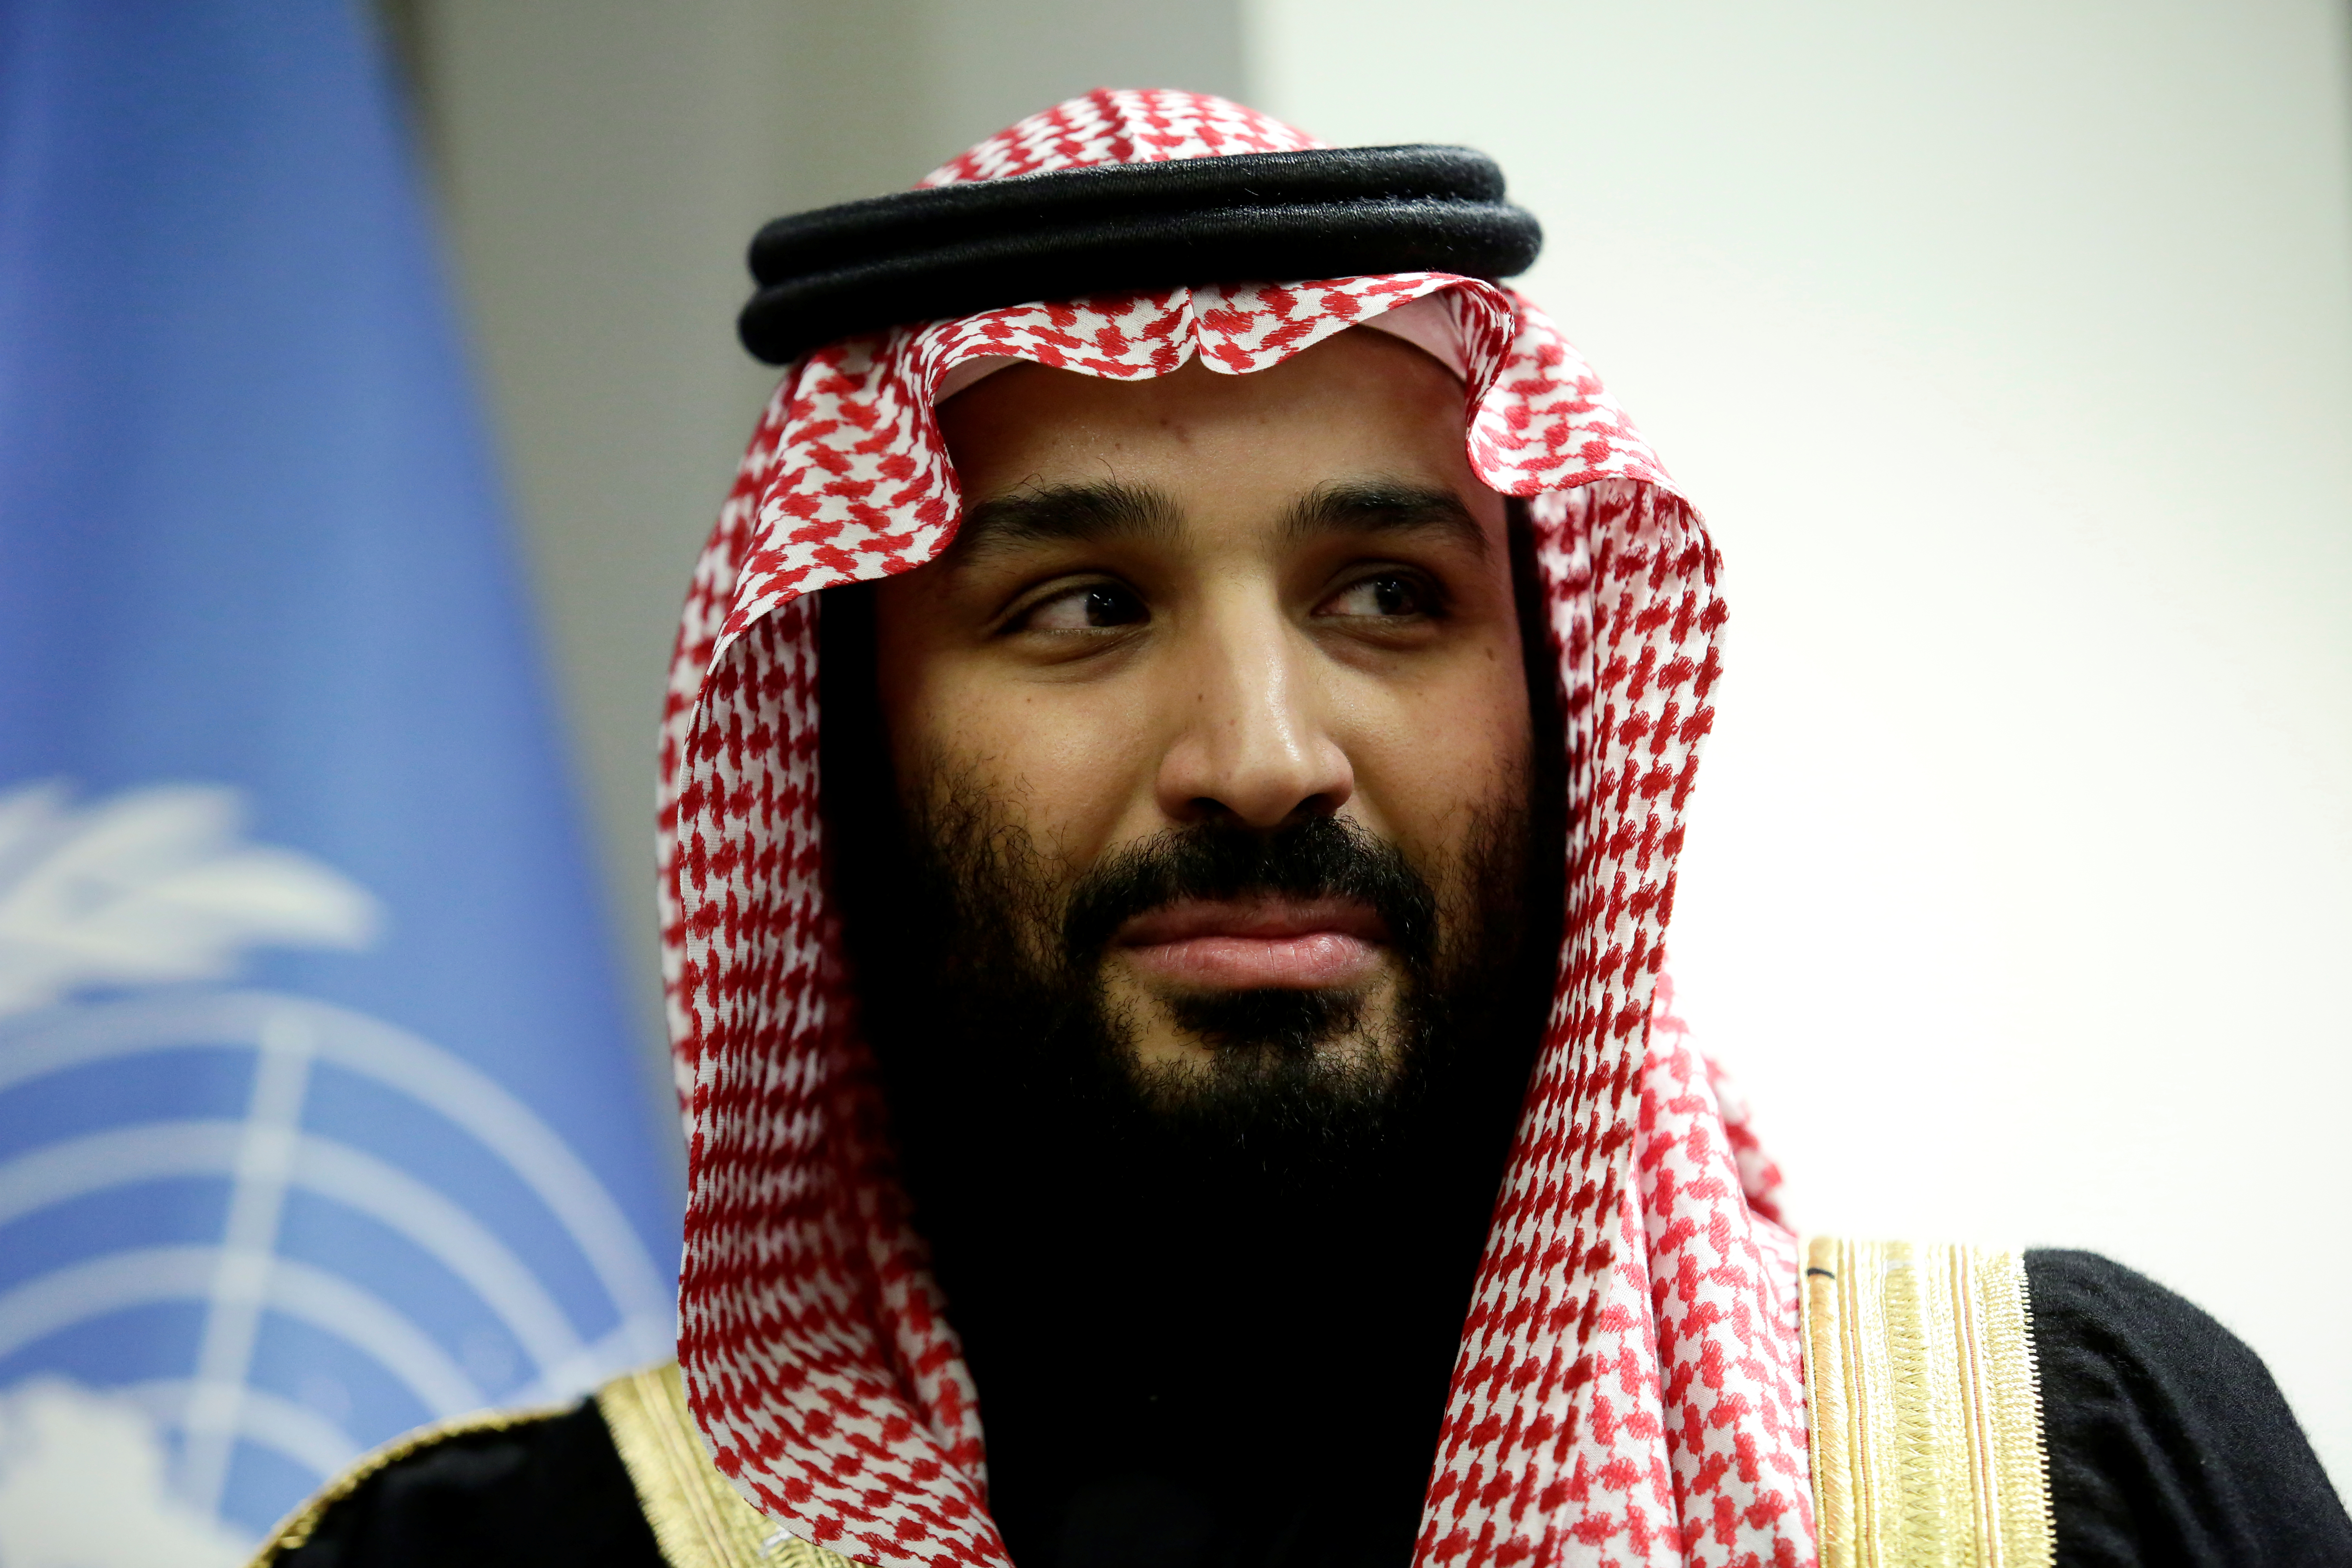 Saudi Arabia's Crown Prince Mohammed bin Salman Al Saud is seen during a meeting with U.N Secretary-General Antonio Guterres at the United Nations headquarters in the Manhattan borough of New York City, New York, U.S. March 27, 2018. REUTERS/Amir Levy - RC1F7FFF07C0